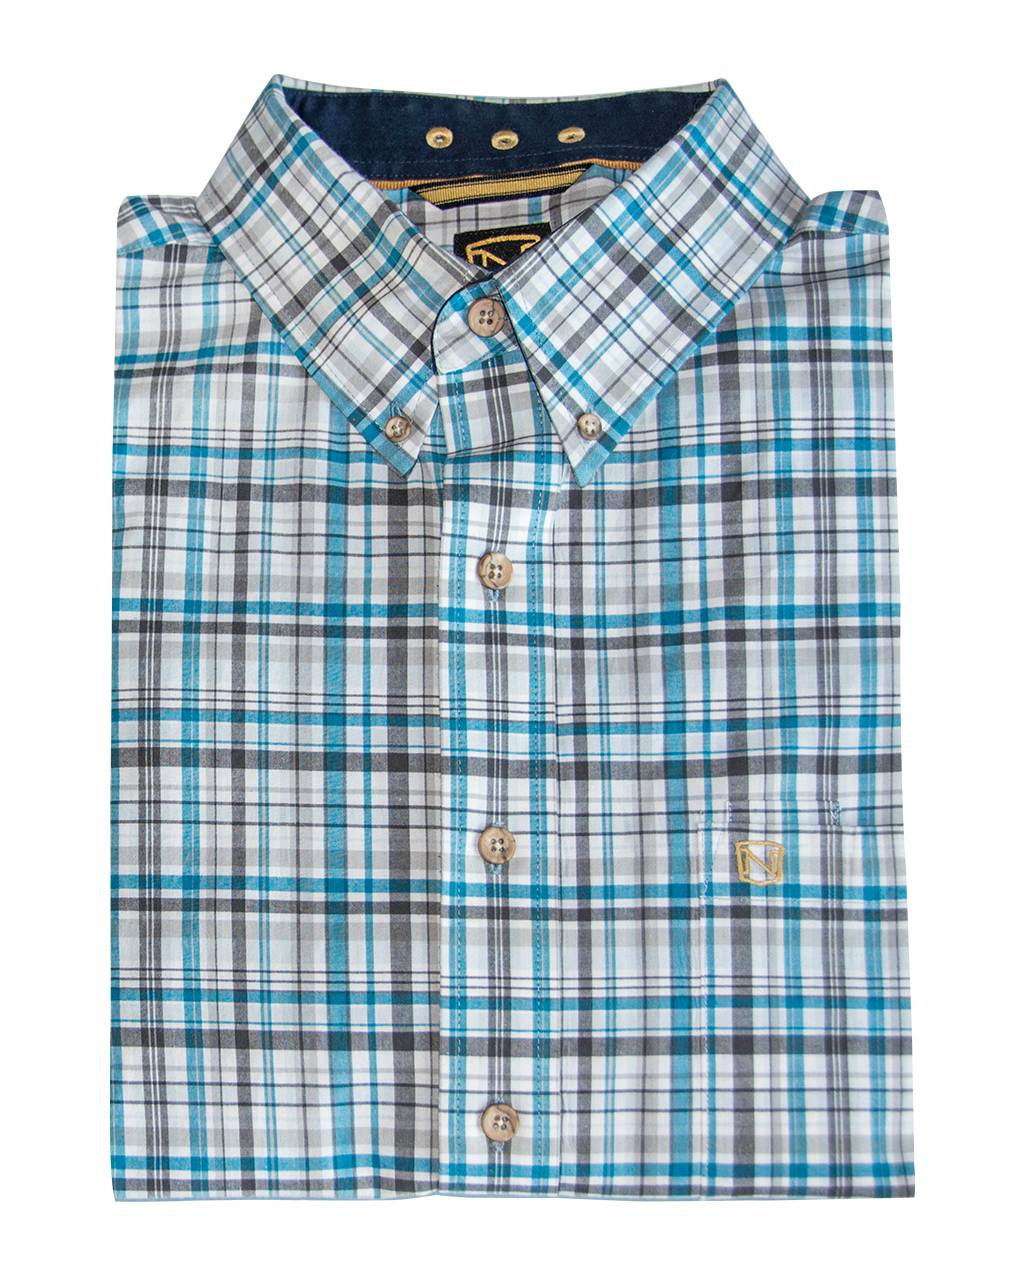 Noble Outfitters Mens Generations Fit Long Sleeve Shirt - Prints & Plaids